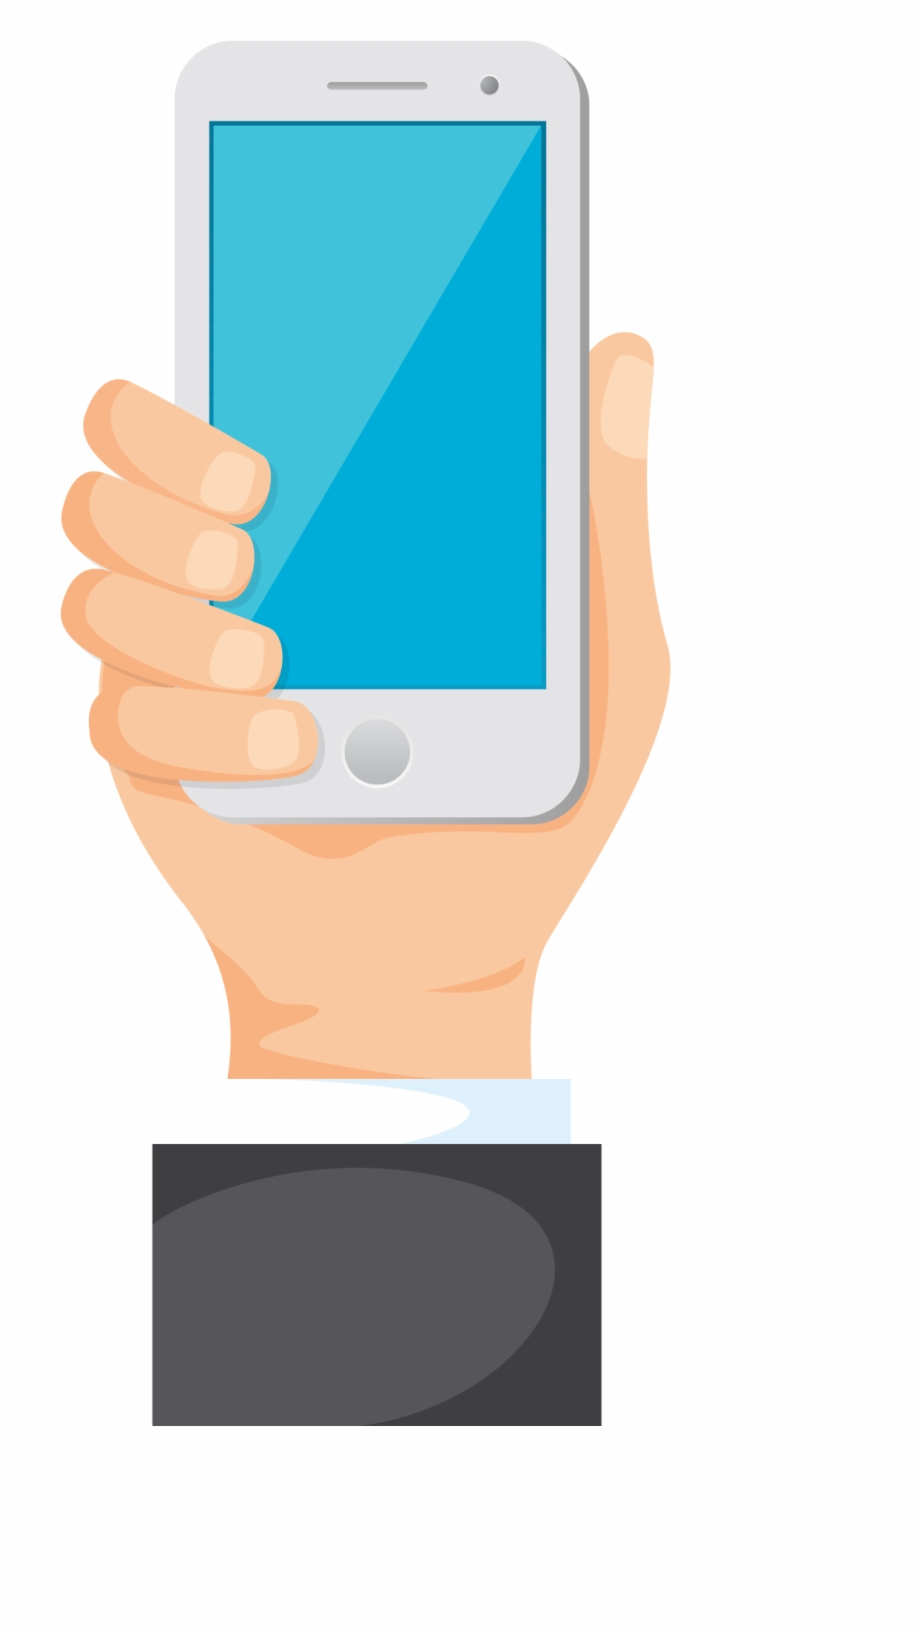 Mobile in hand clipart png free stock Phone In Hand Clipart Free PNG Images & Clipart Download ... png free stock